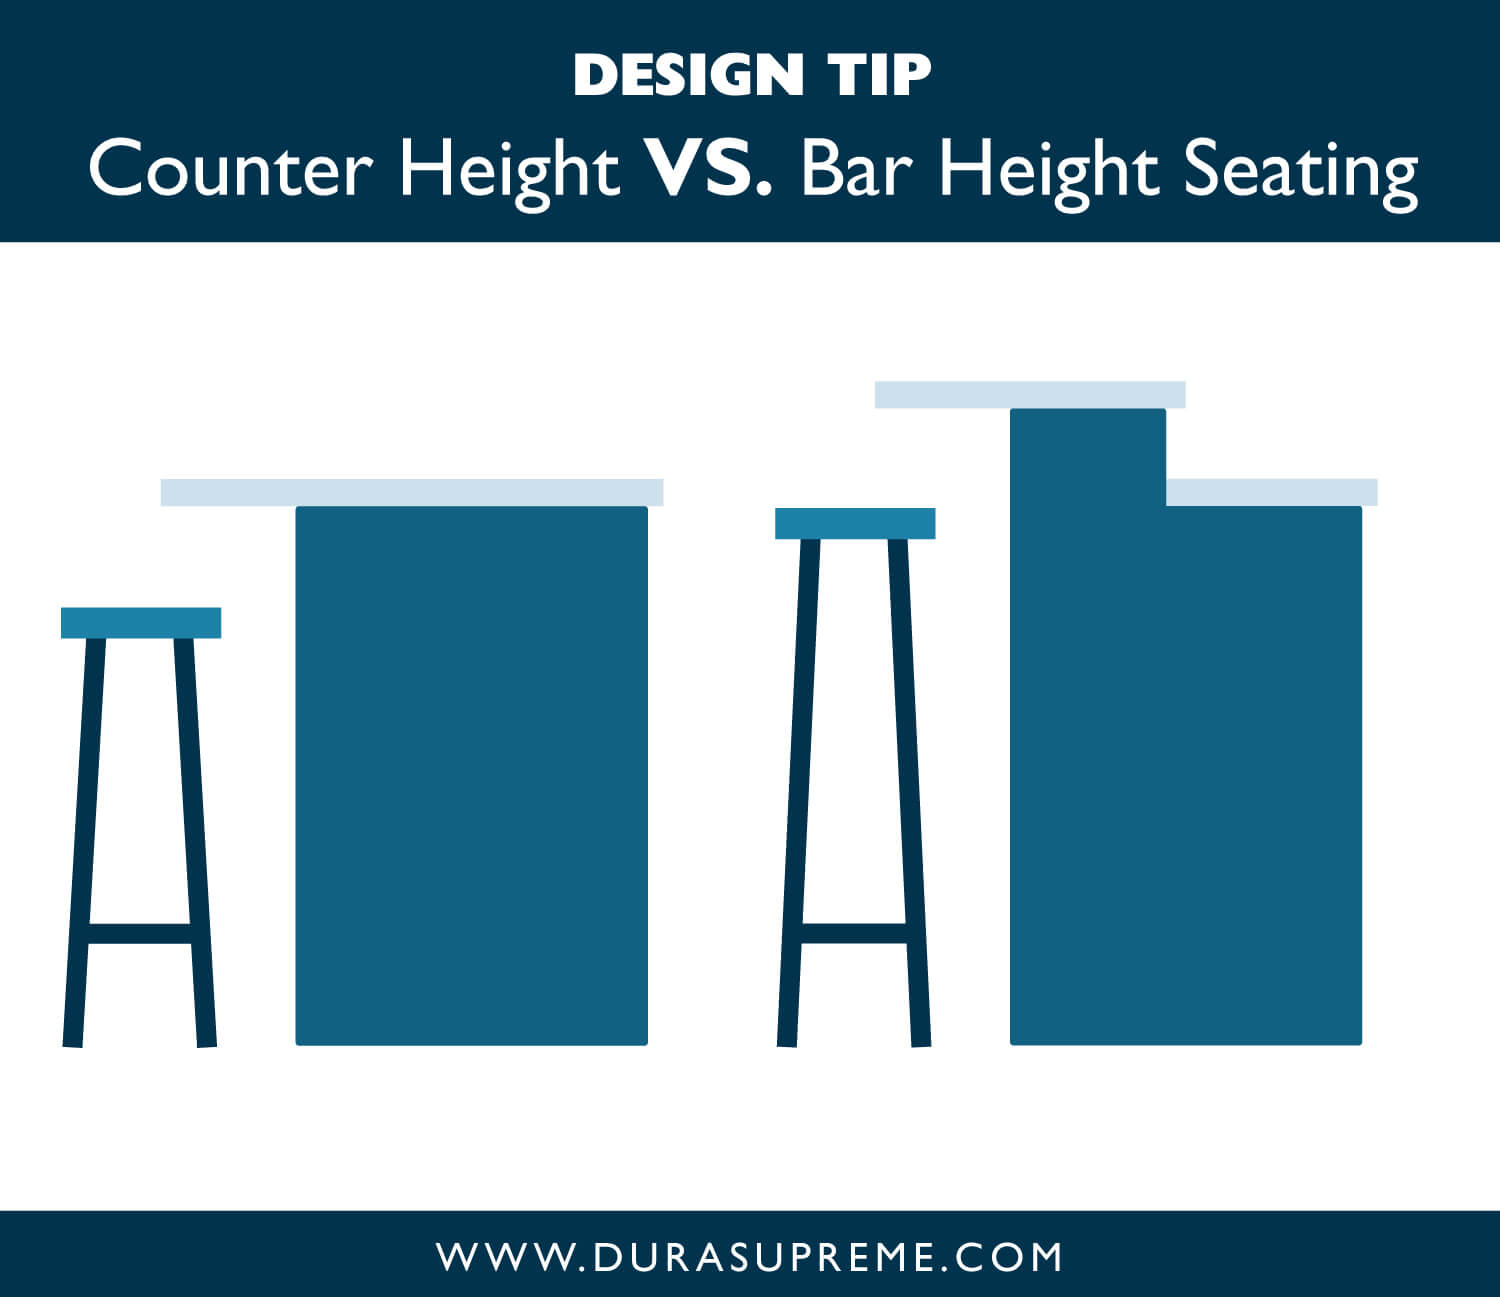 Kitchen design tip: Countertop Height VS. Bar Height Seating